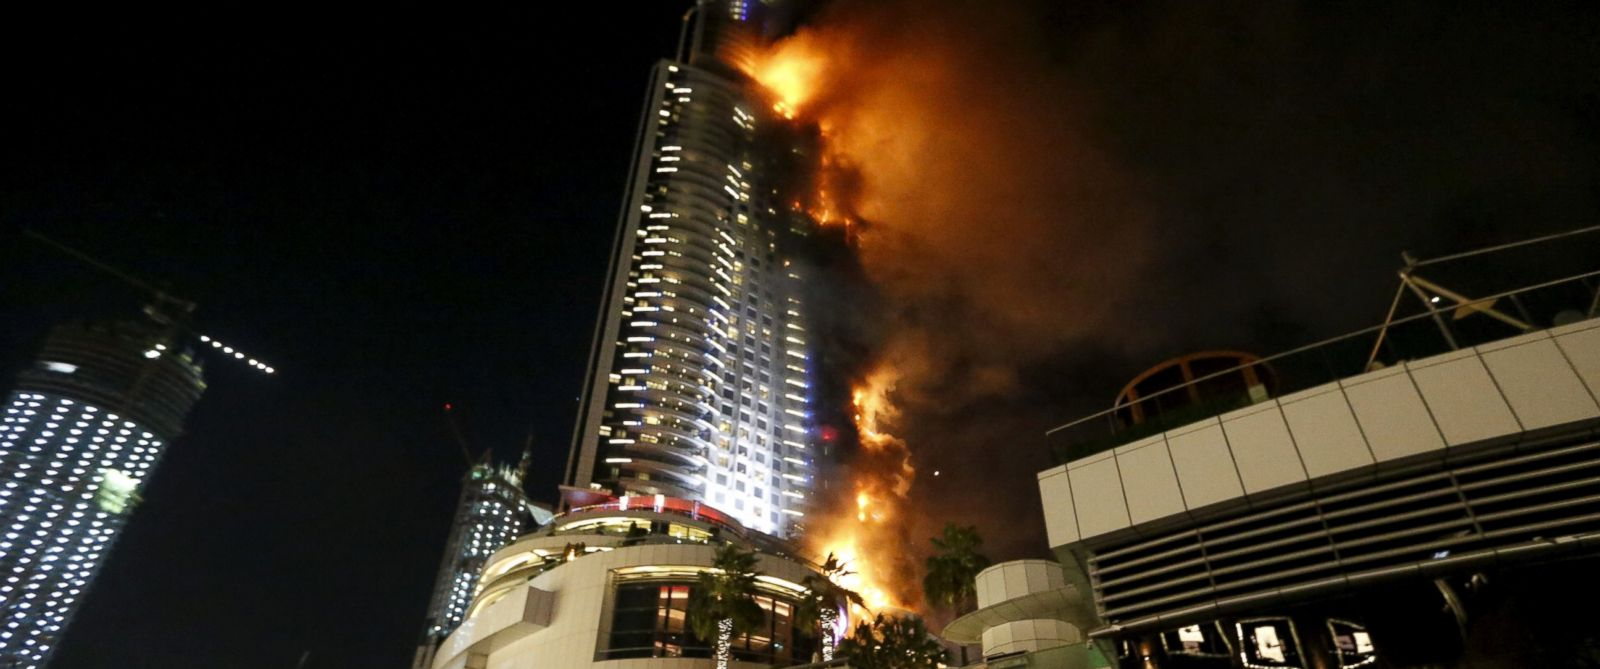 PHOTO: A fire engulfs The Address Hotel in downtown Dubai in the United Arab Emirates Dec. 31, 2015.